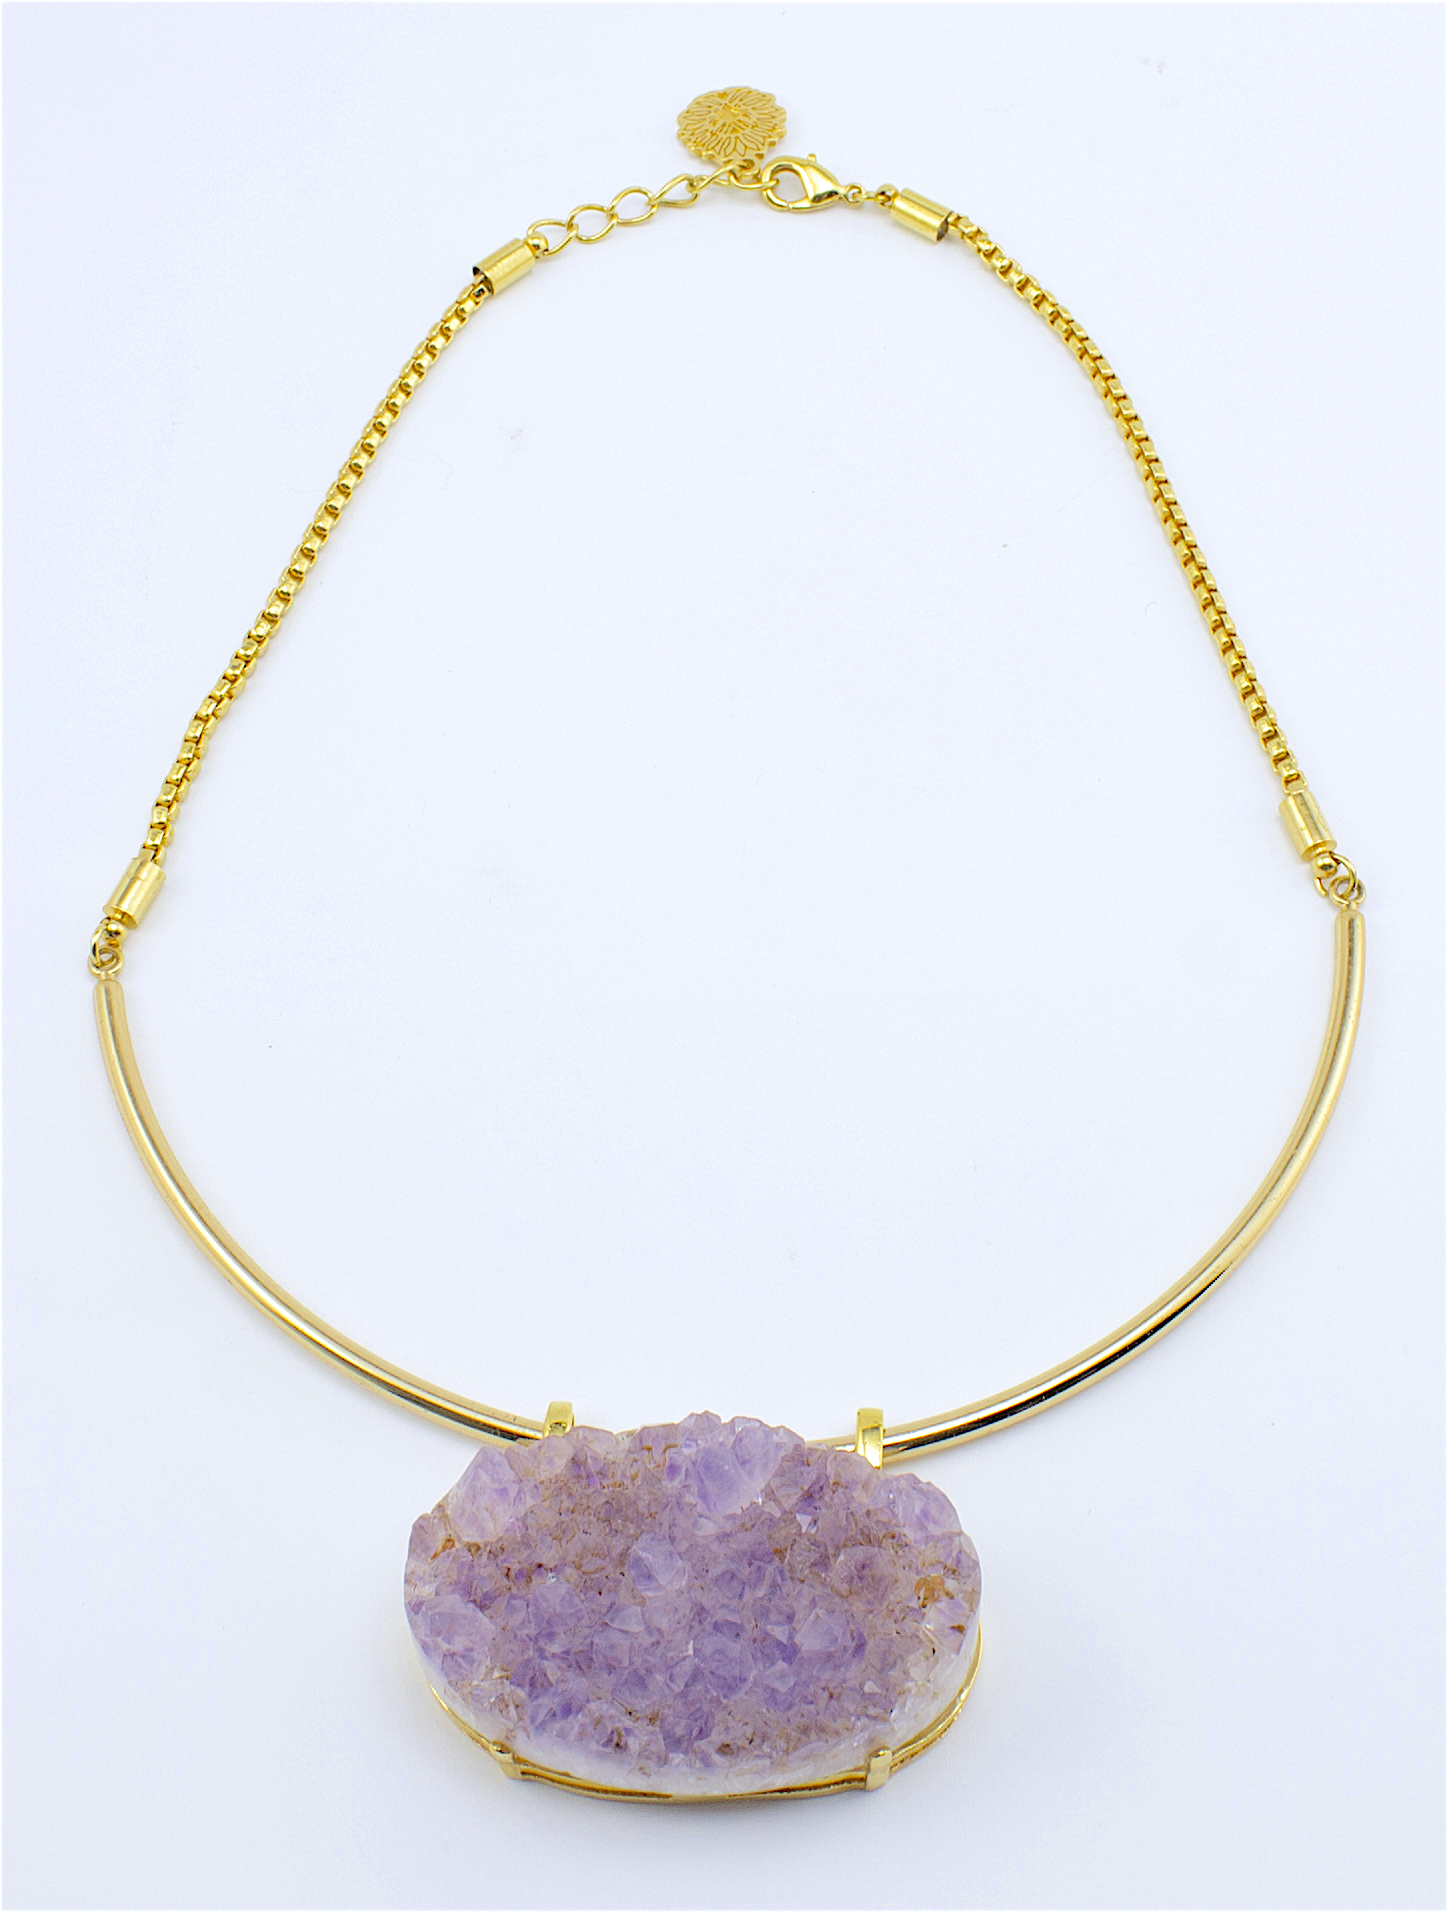 raw pendant product and market shop necklace melrose of triple stone image nordstrom rack